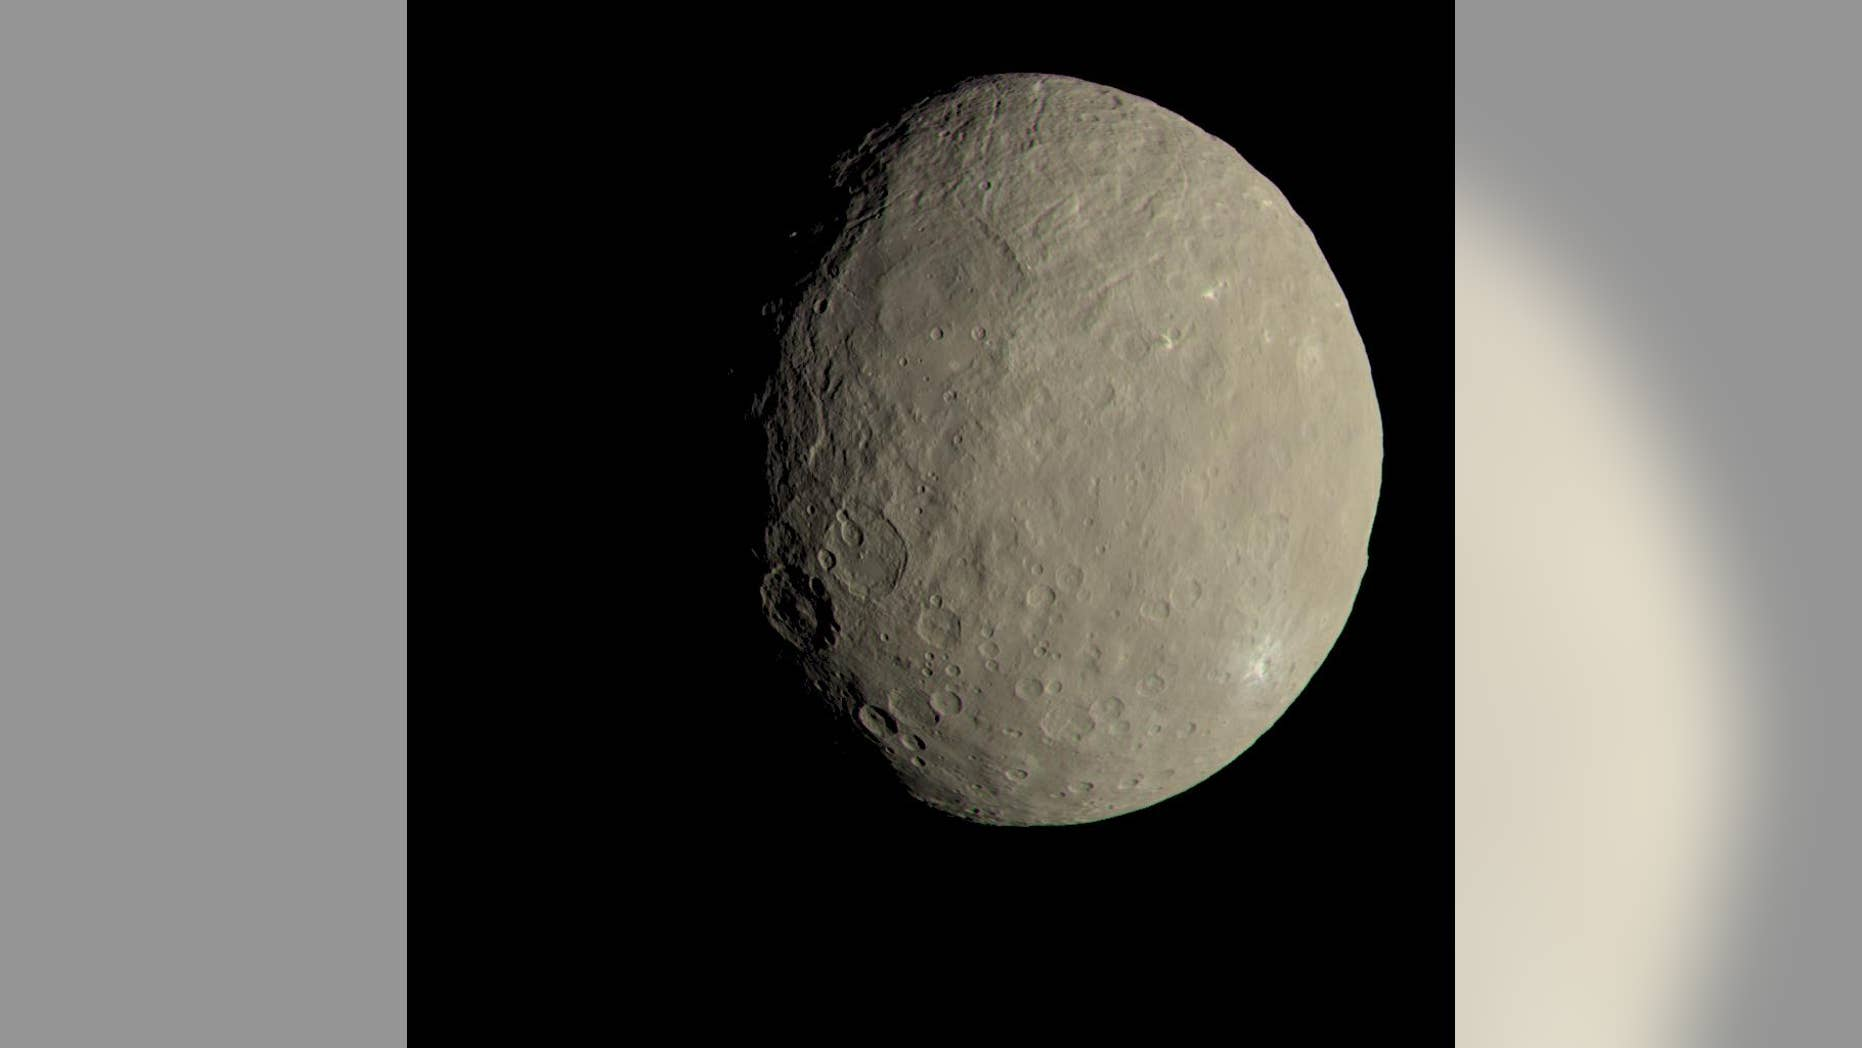 This view of Ceres from NASA's Dawn spacecraft shows what the dwarf planet would look like to the human eye.